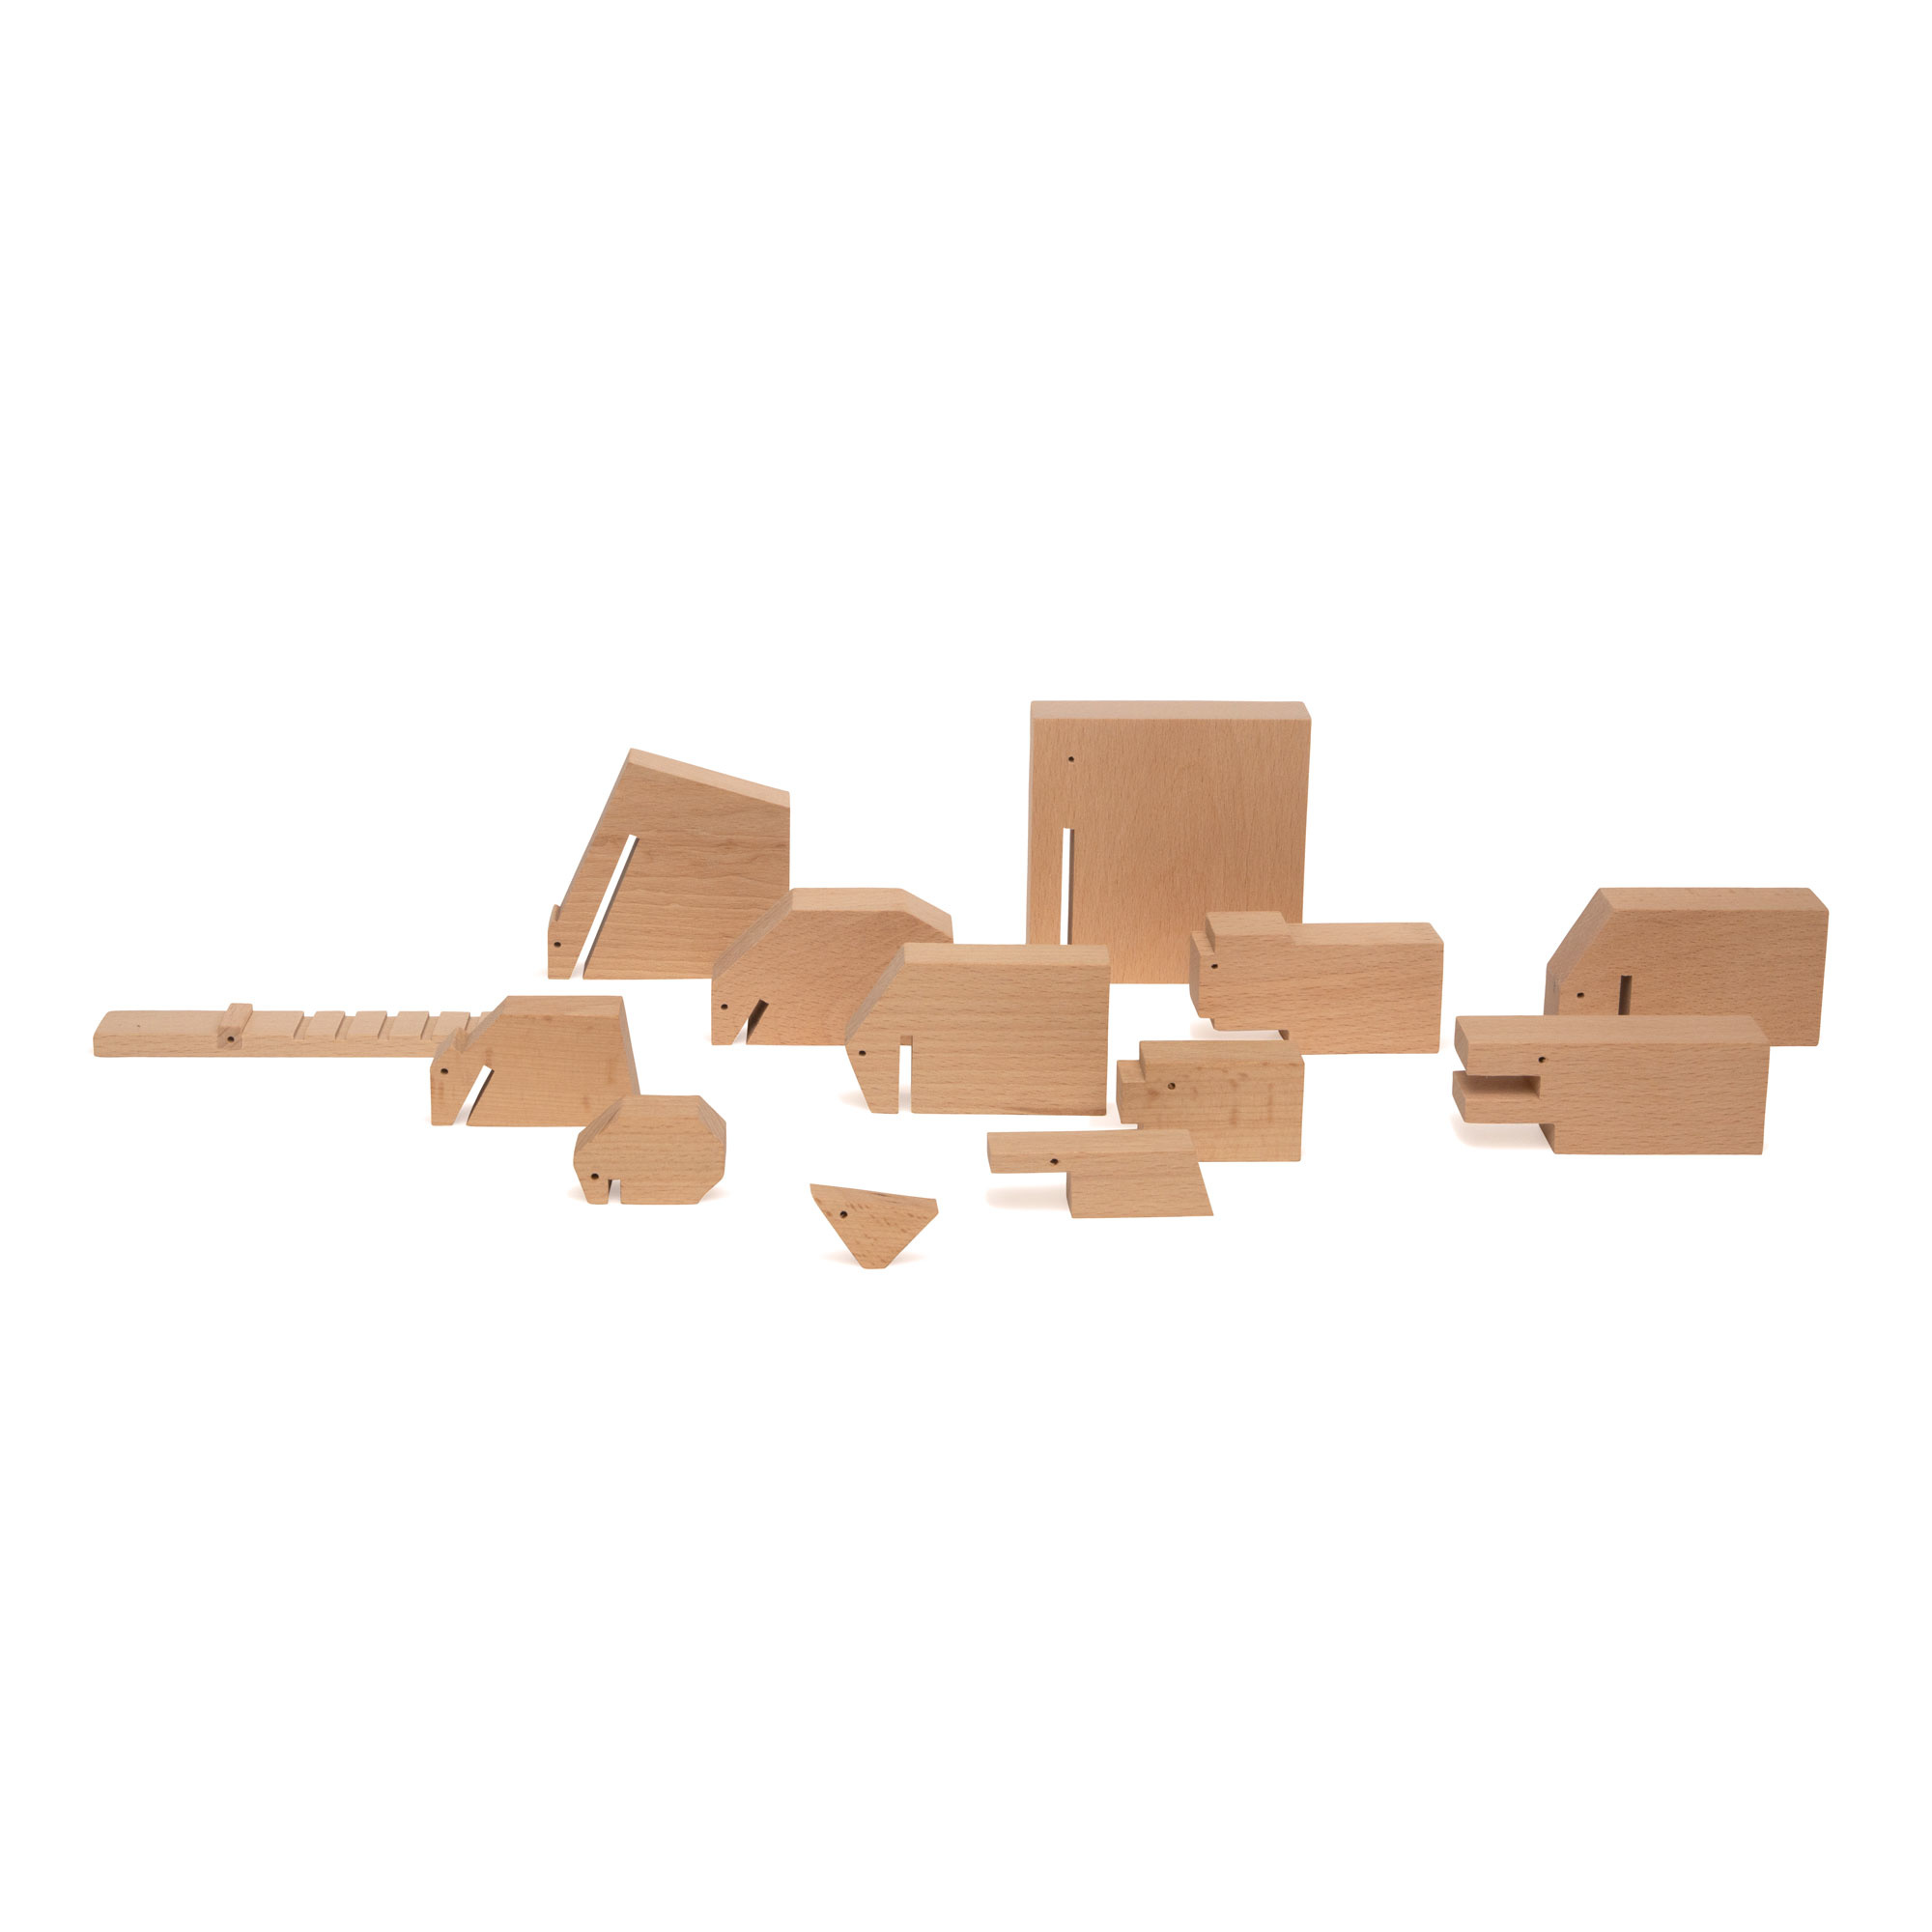 Ikonic Toys Floris Hovers Holztiere - wood colour